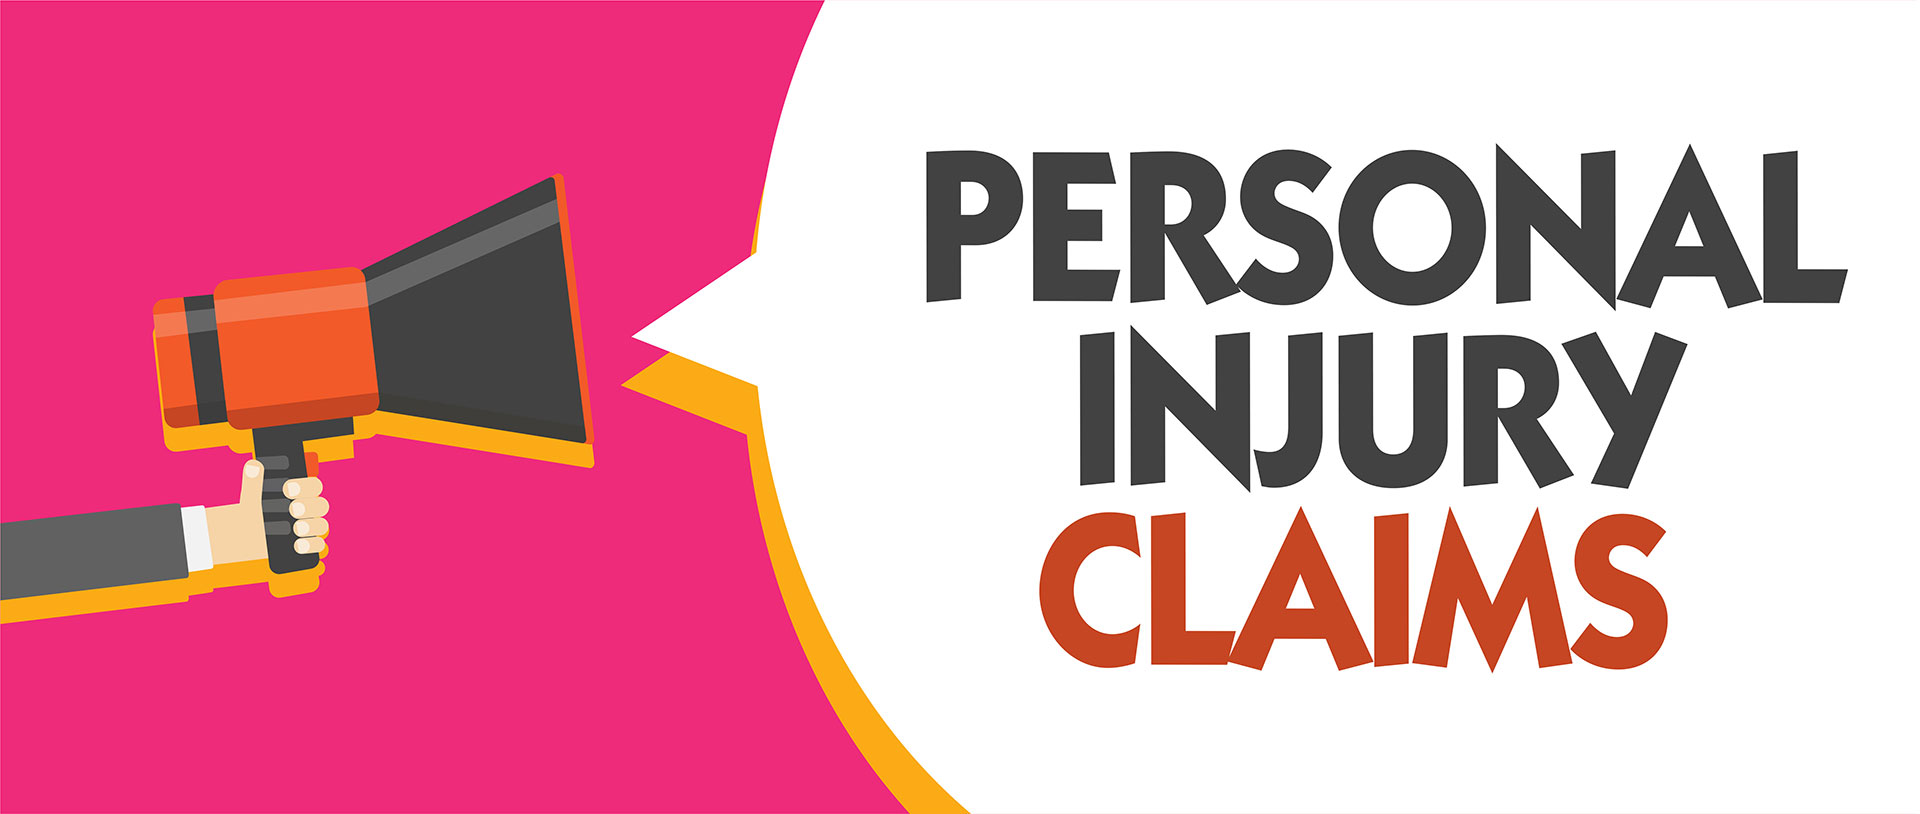 Starting a Personal Injury Claim